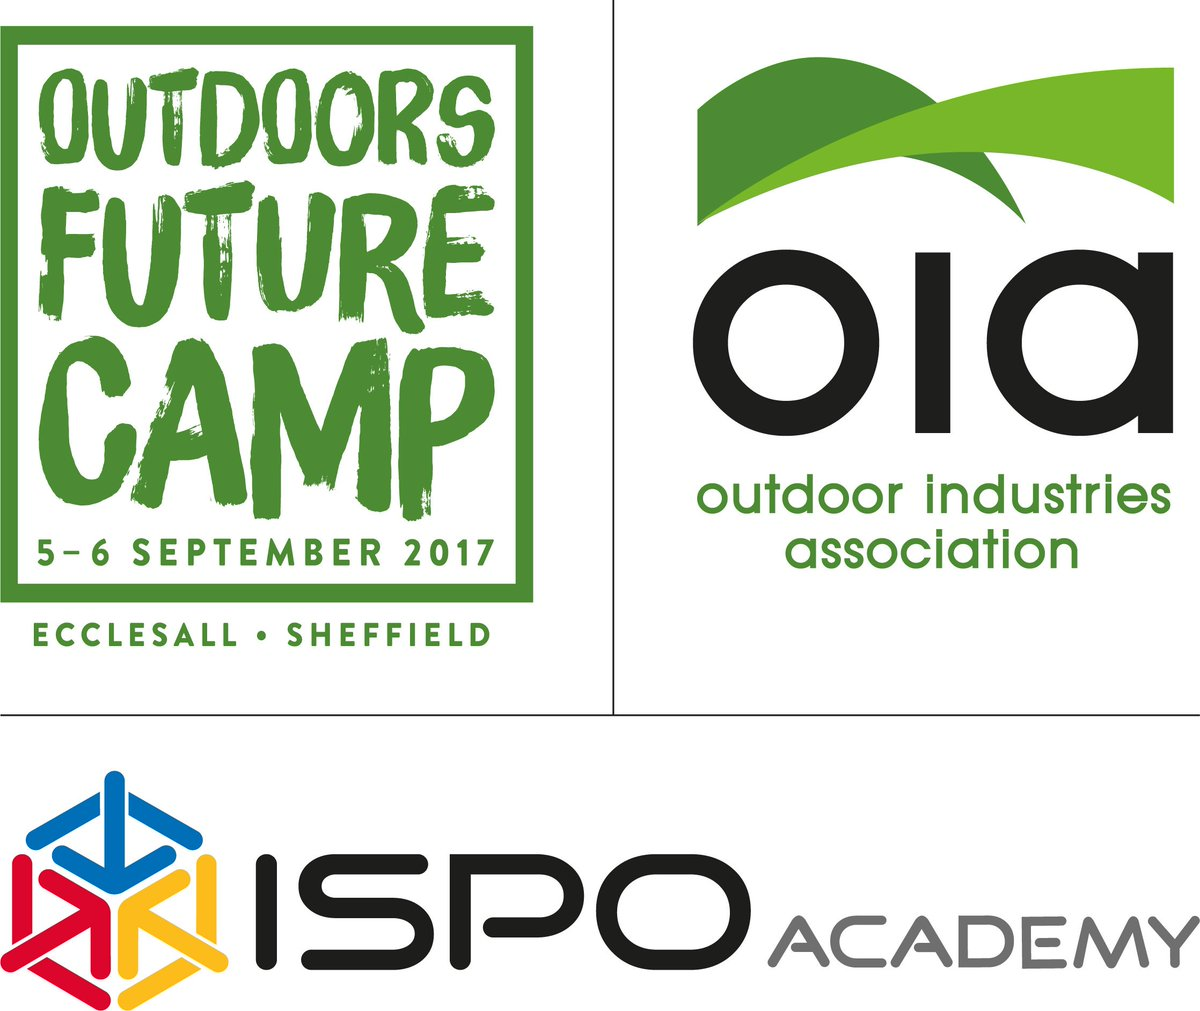 Book your place at the Outdoors Future Camp in Sheffield (5-6 Sept) to #Learn #Network and #BeInspired - more info:  http://www. outdoorindustriesassociation.co.uk/OutdoorsFuture Camp &nbsp; … <br>http://pic.twitter.com/Ac323gjeeI